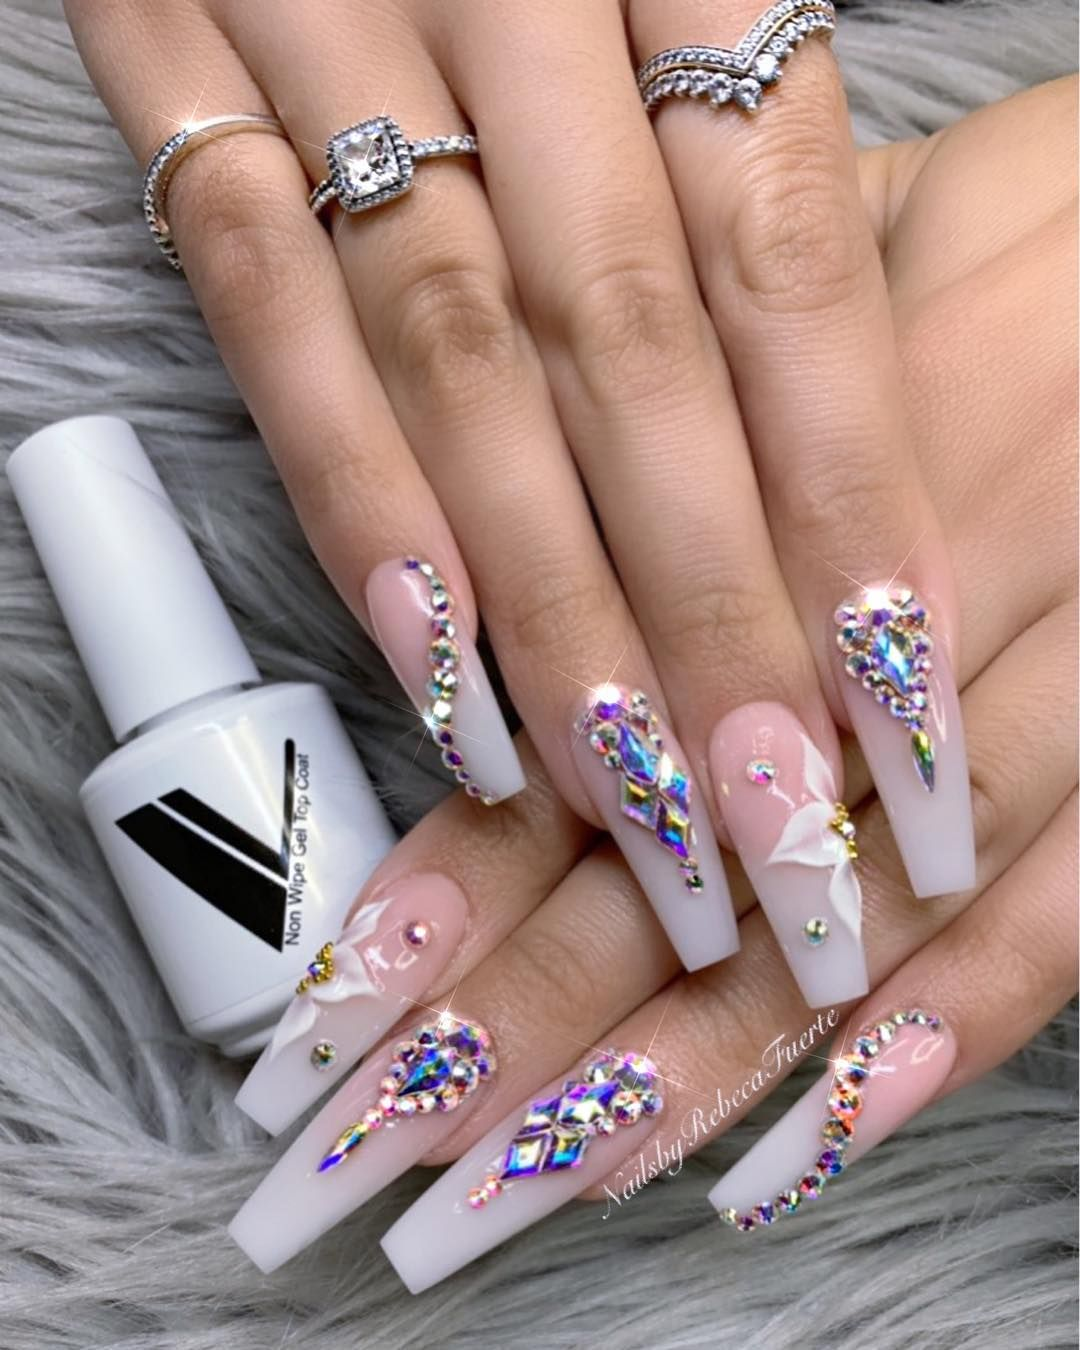 B E A U T I F U L Valentinobeautypure Swarovski Nails Nails Design With Rhinestones Bling Nails